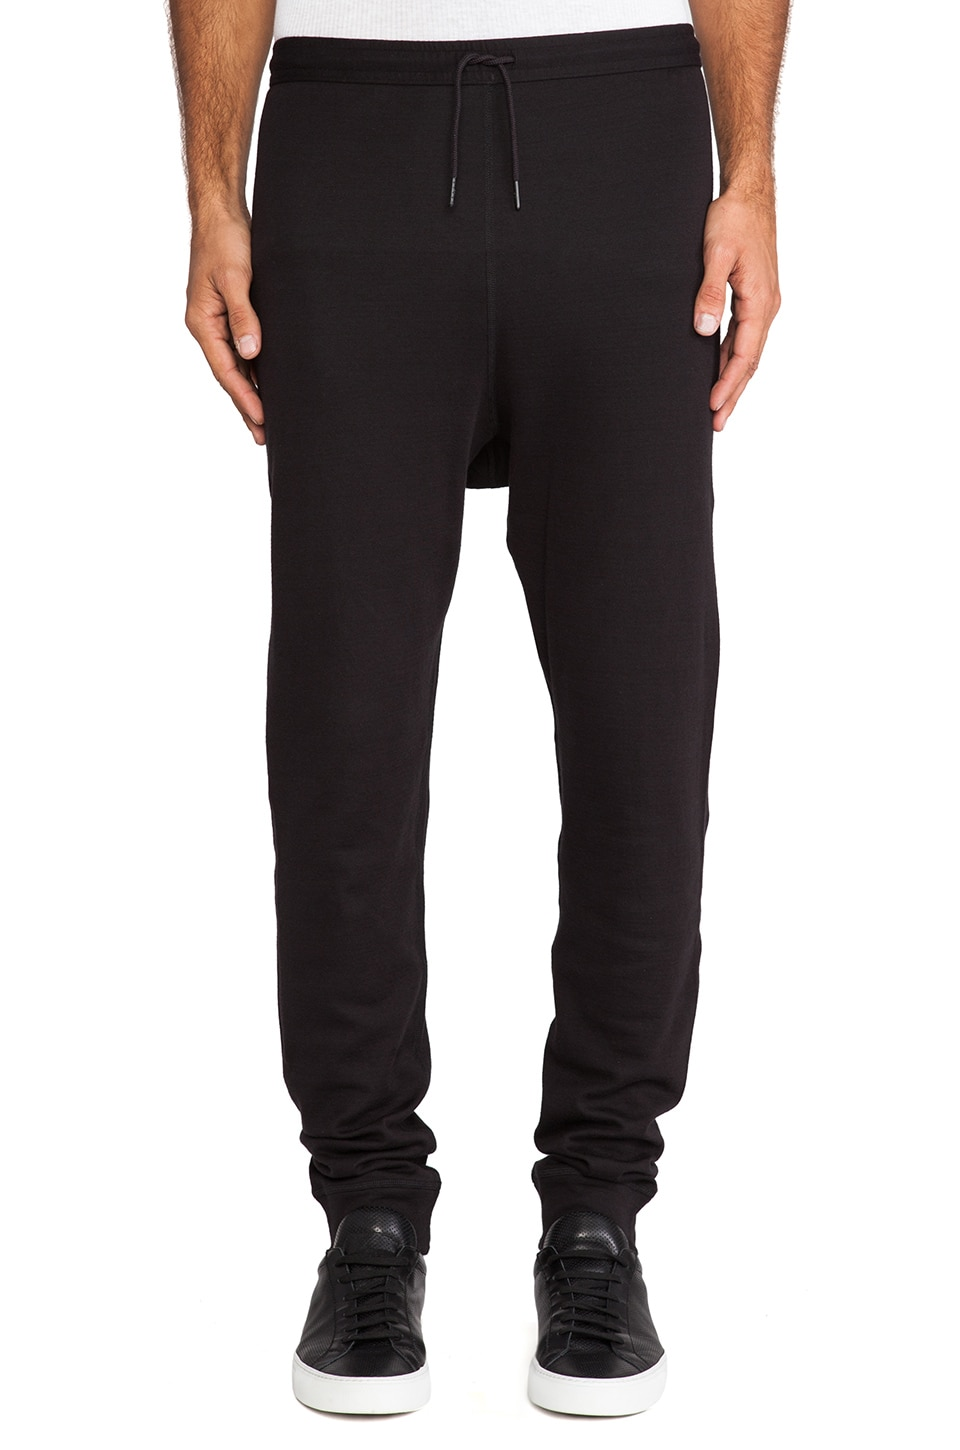 Y-3 Yohji Yamamoto Track Pant in Black & Forest Glade